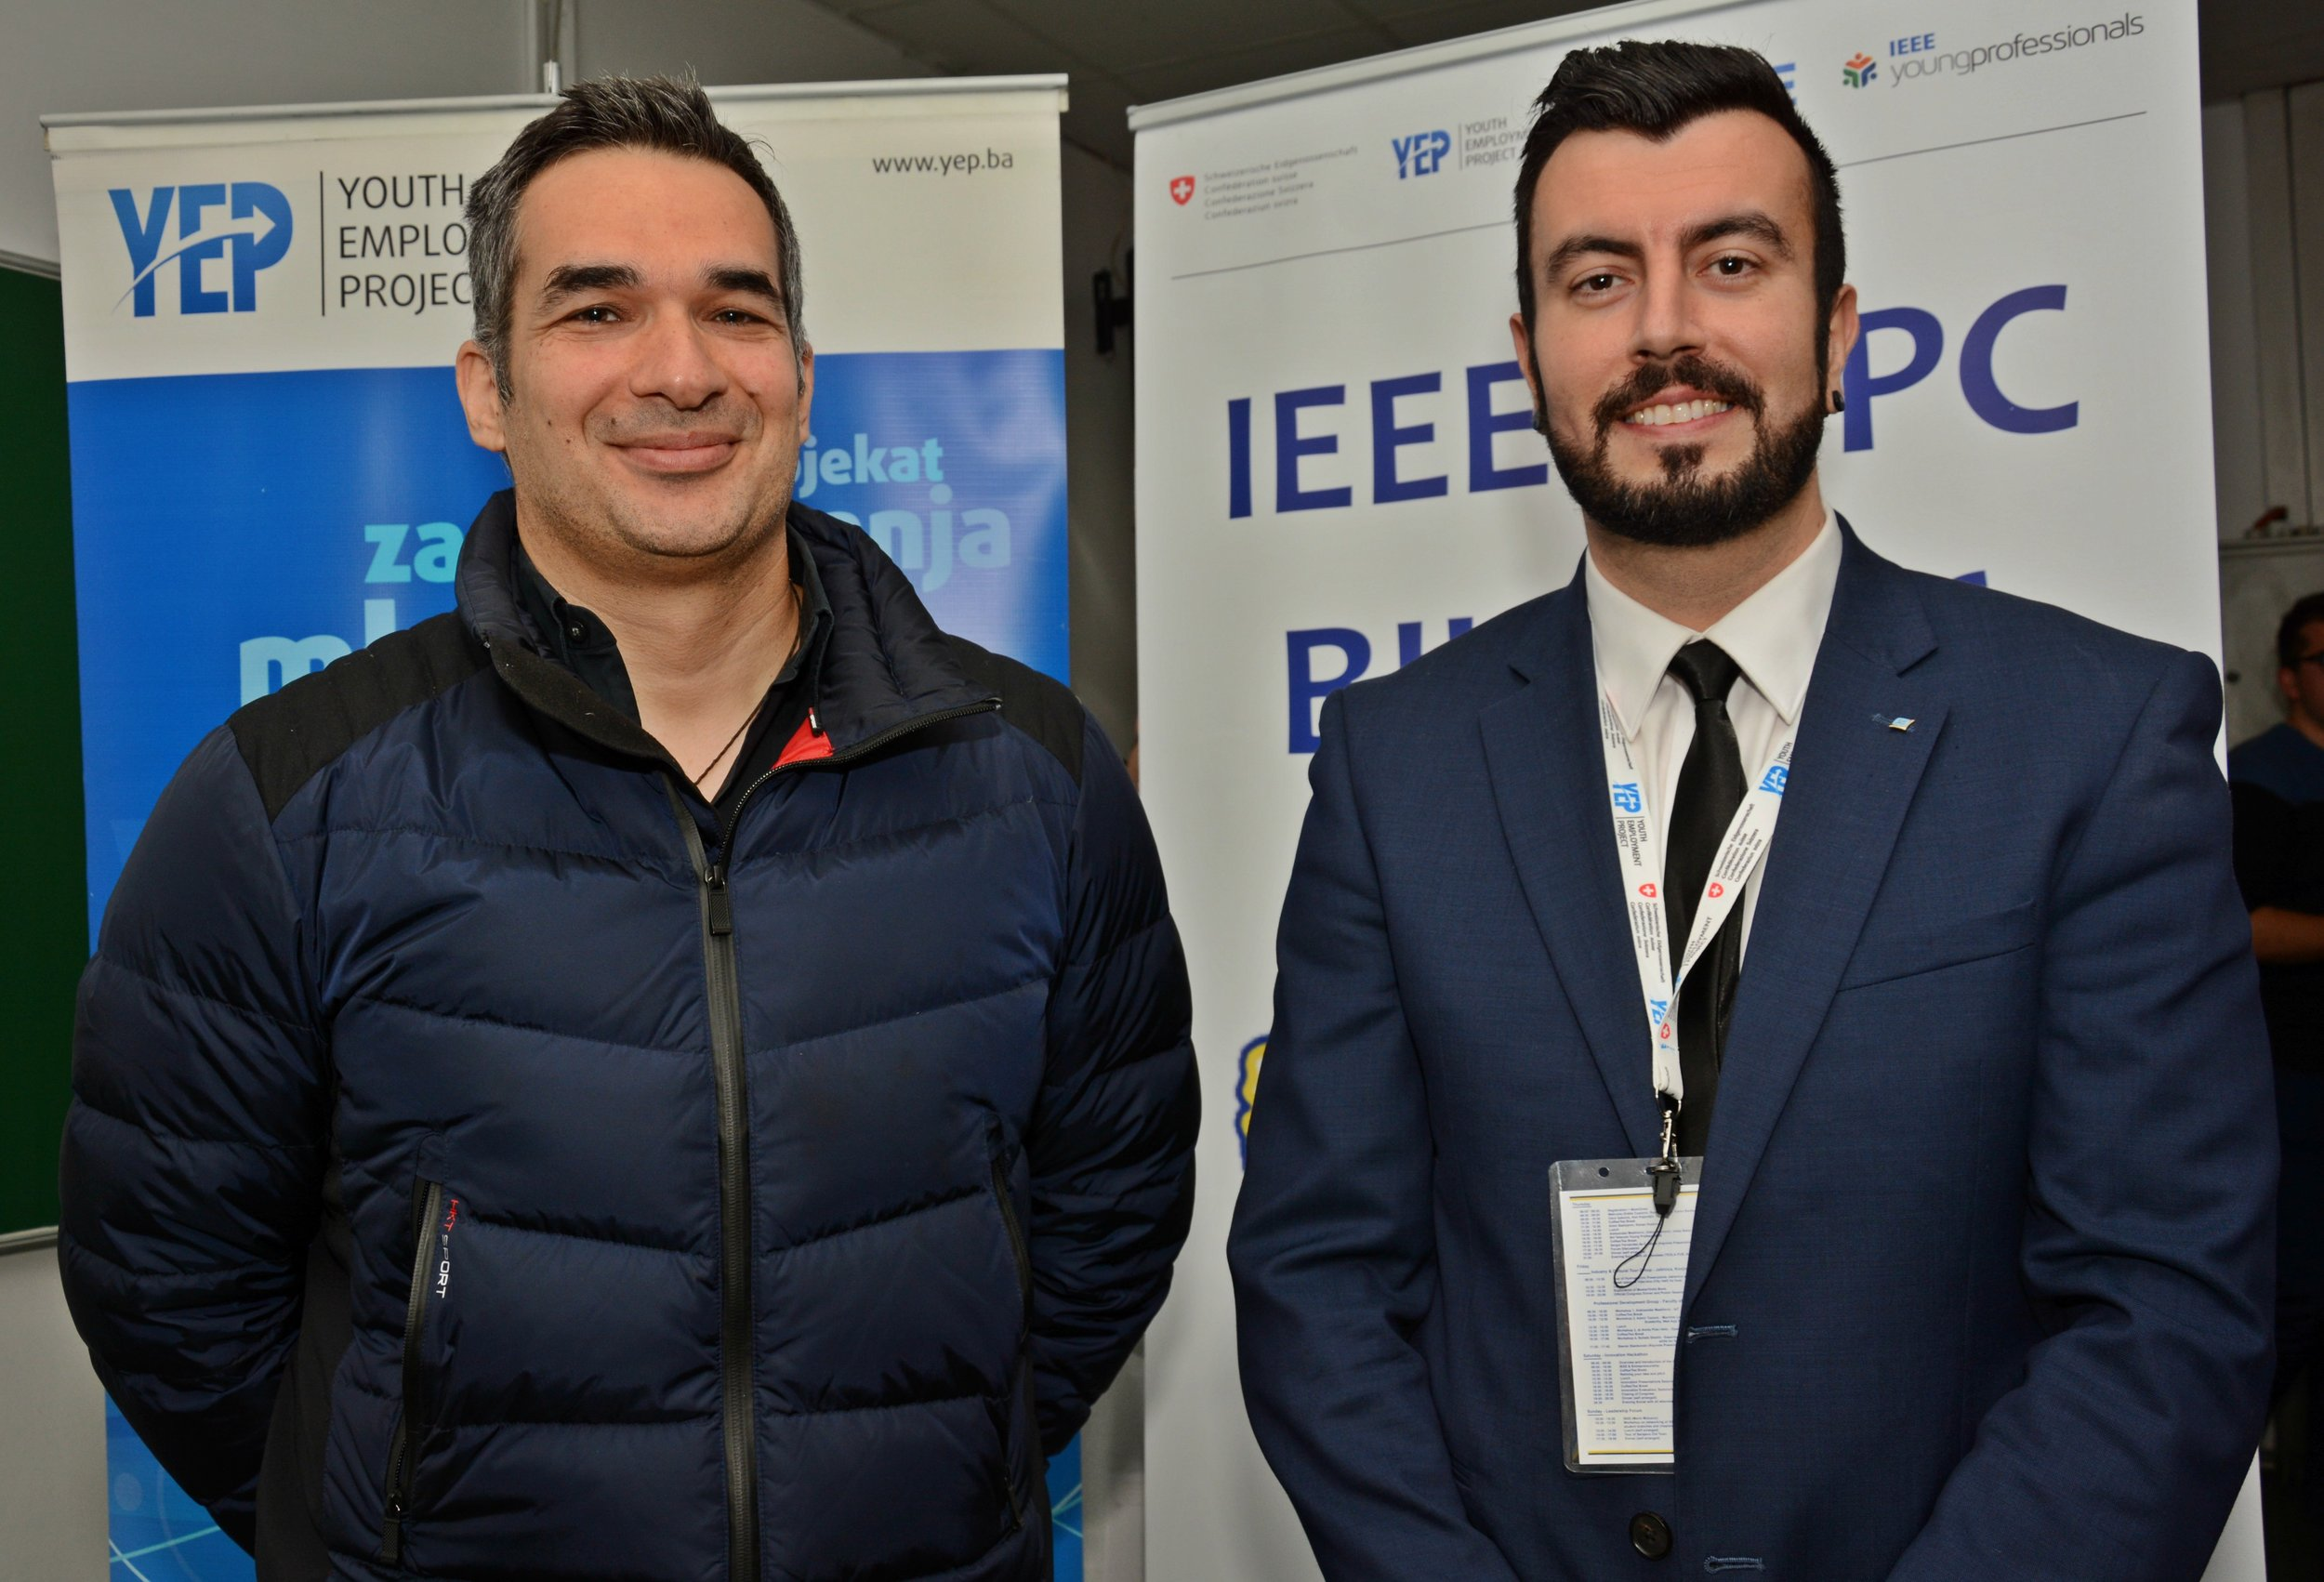 Gakovic and Custovic established a collaborative approach in December 2016 at the IEEE Student & Young Professional Congress in Sarajevo.